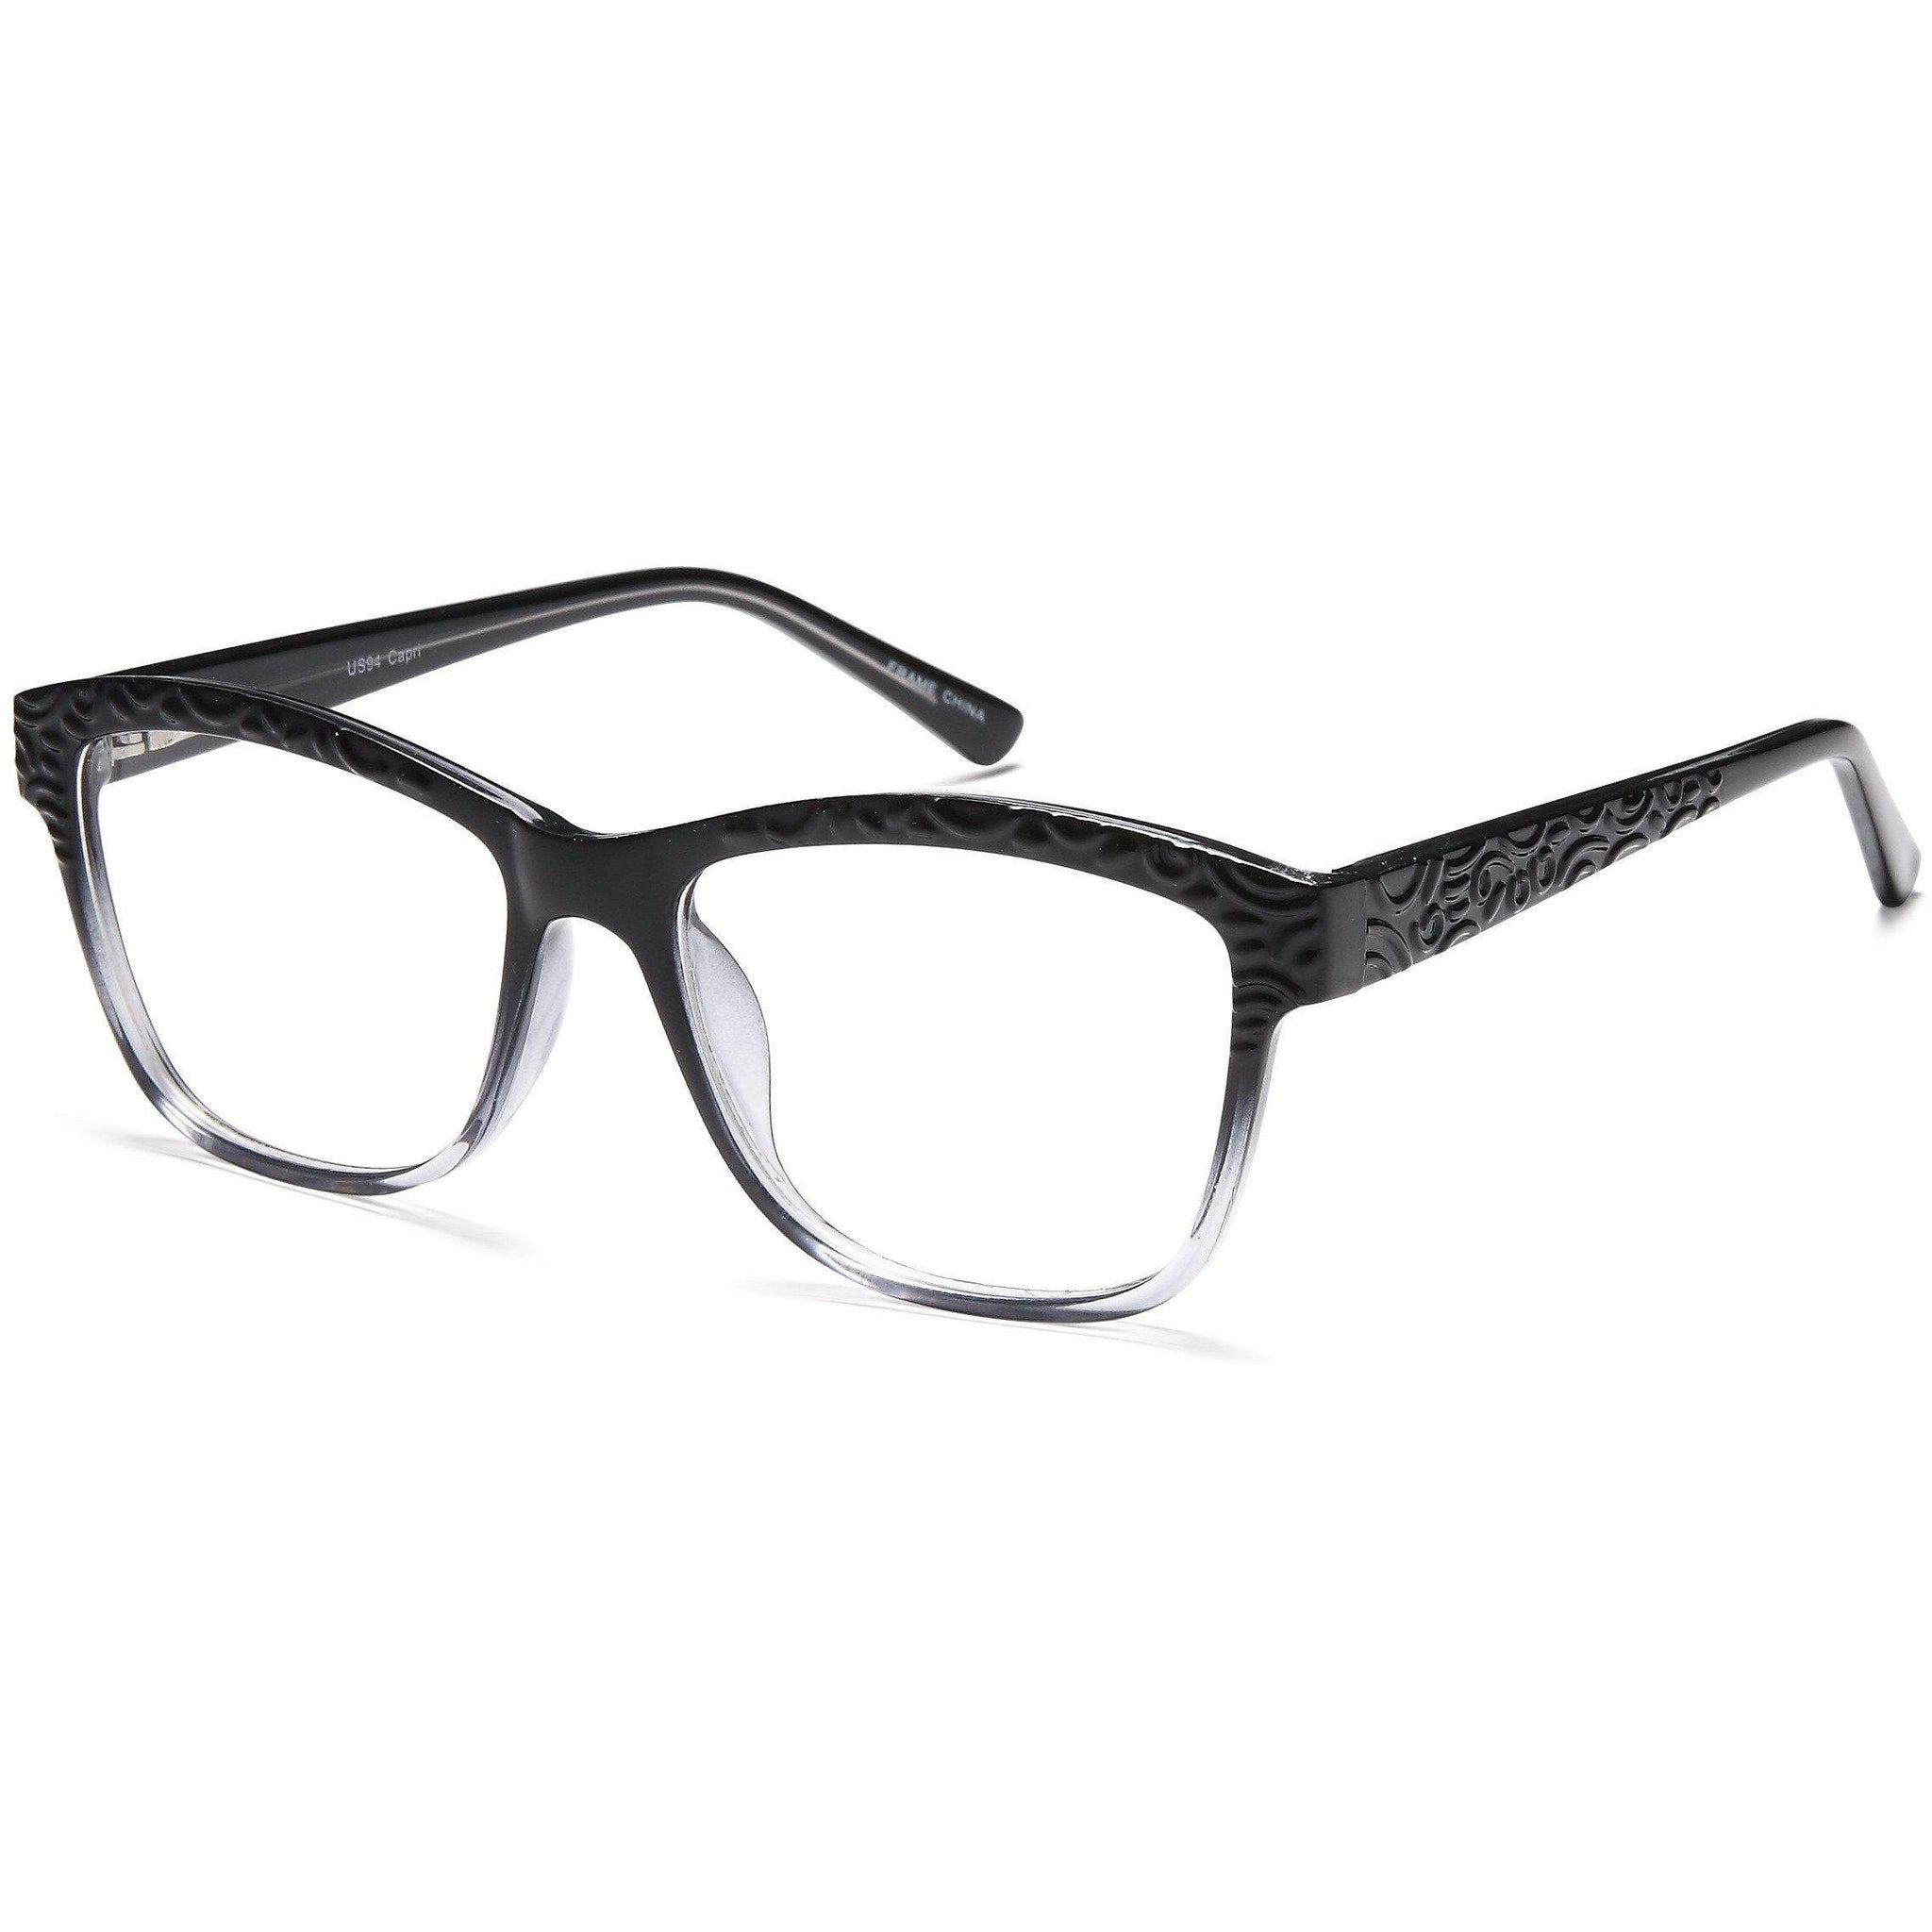 4U Prescription Glasses US 94 Optical Eyeglasses Frame - timetoshade